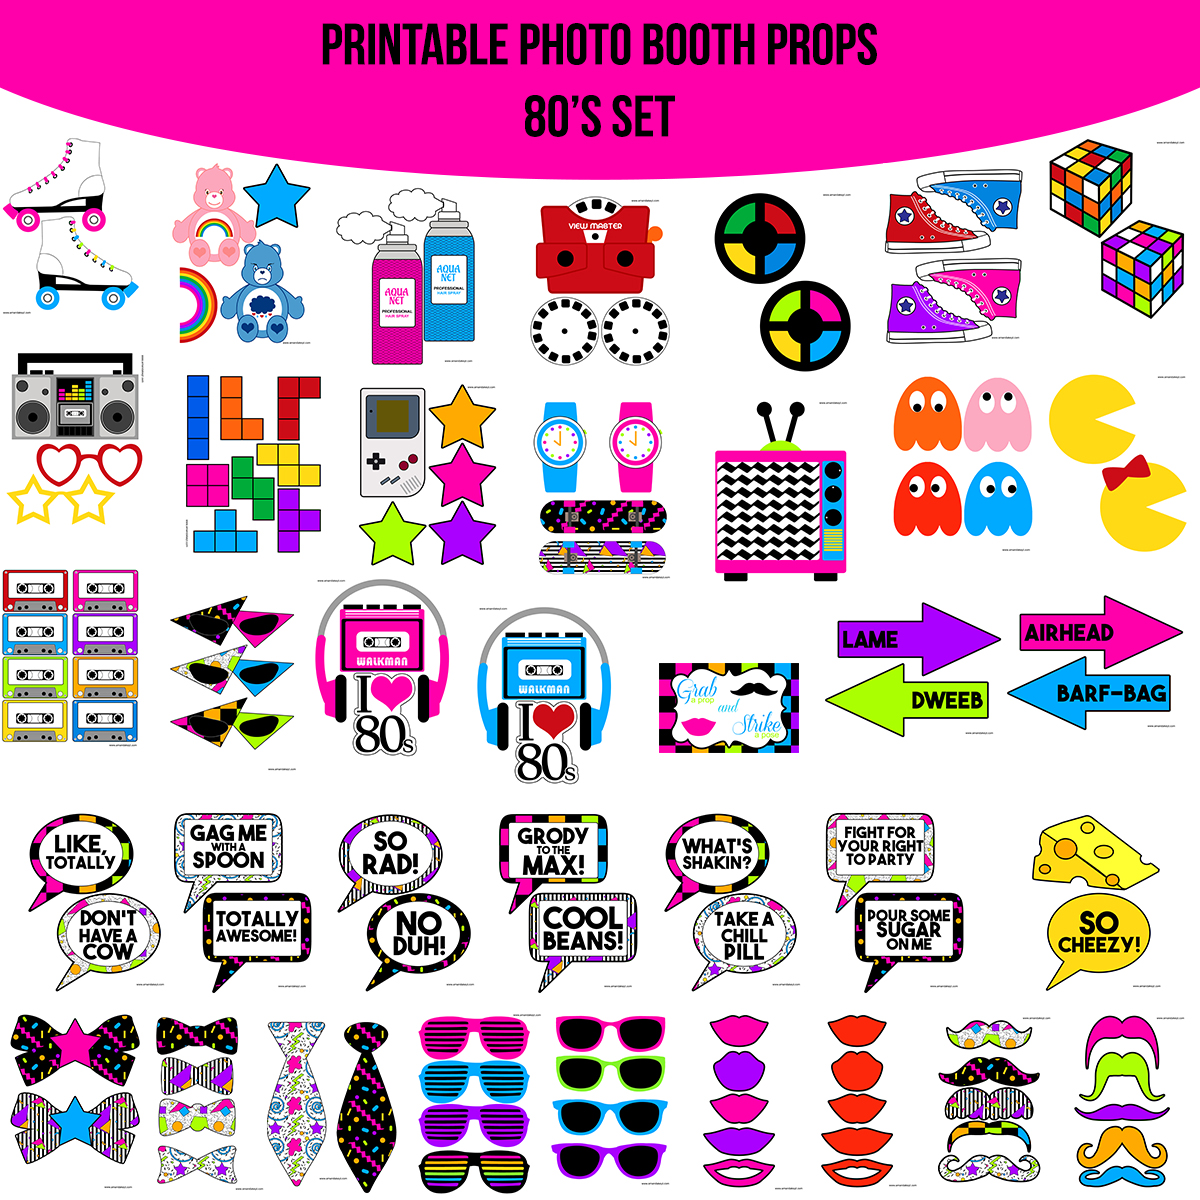 Instant Download 80s 80s Printable Photo Booth Prop Set Amanda